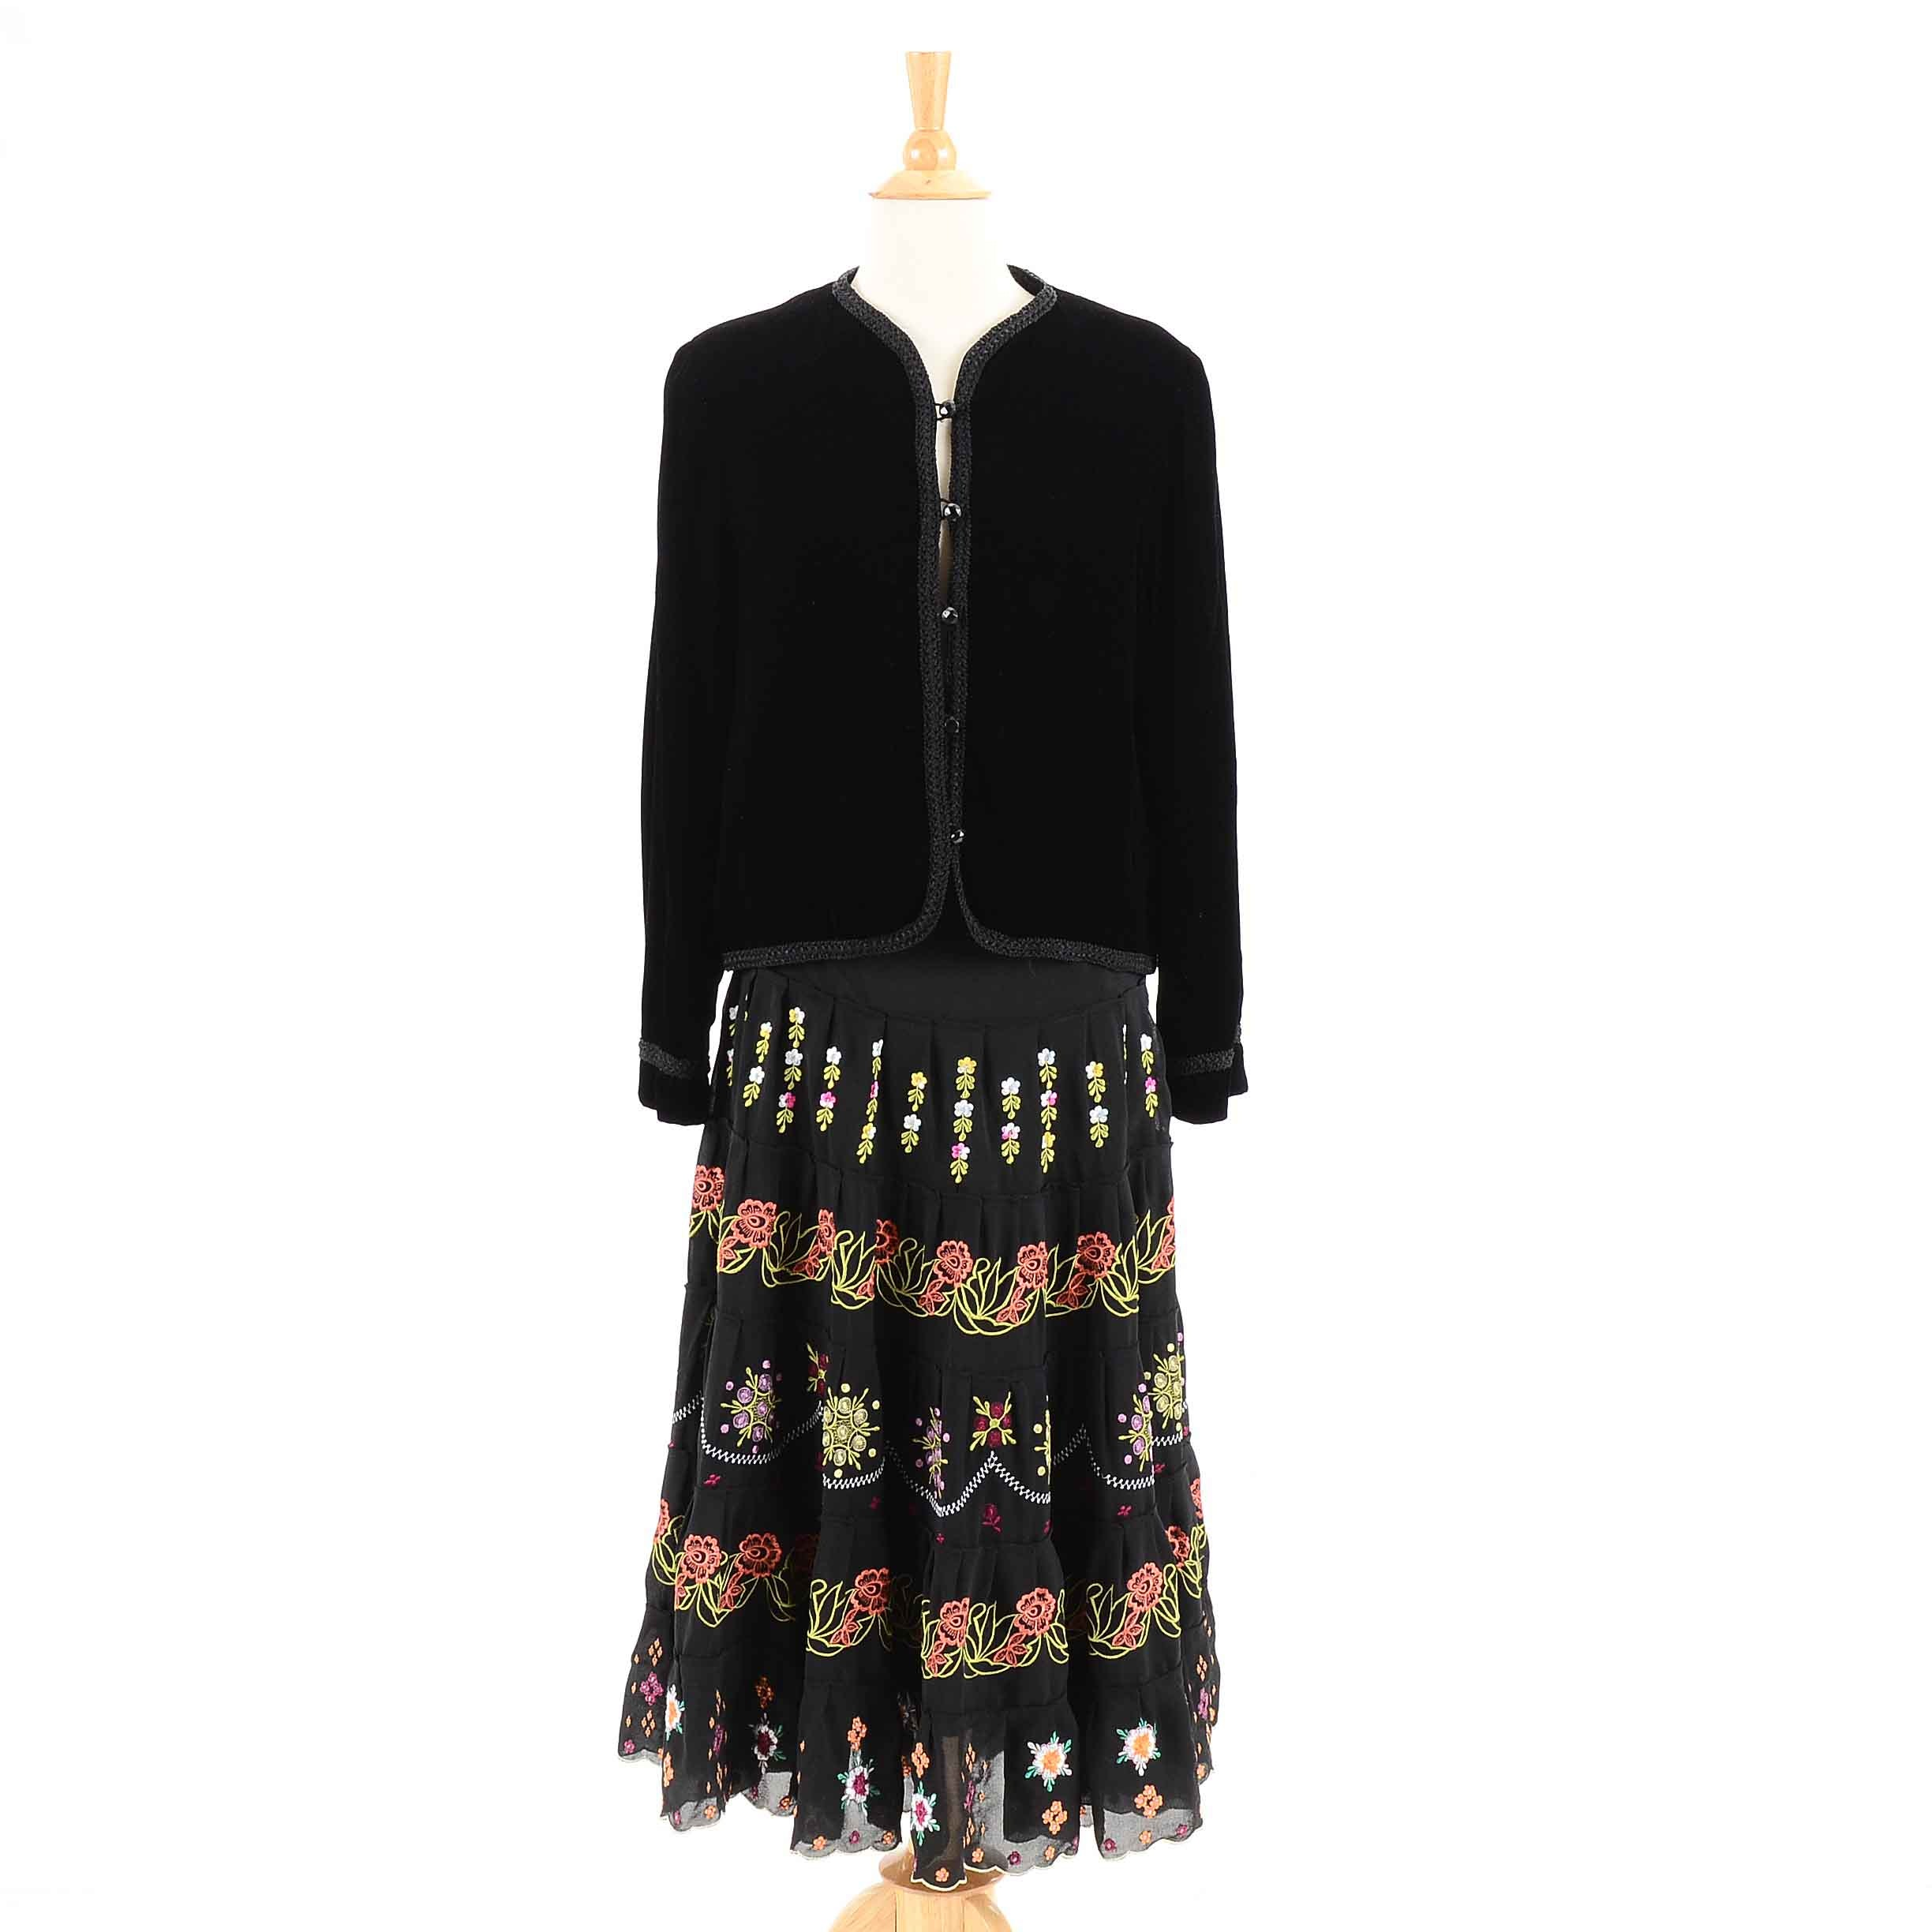 Embroidered Floral Black Silk Skirt and Velvet Jacket